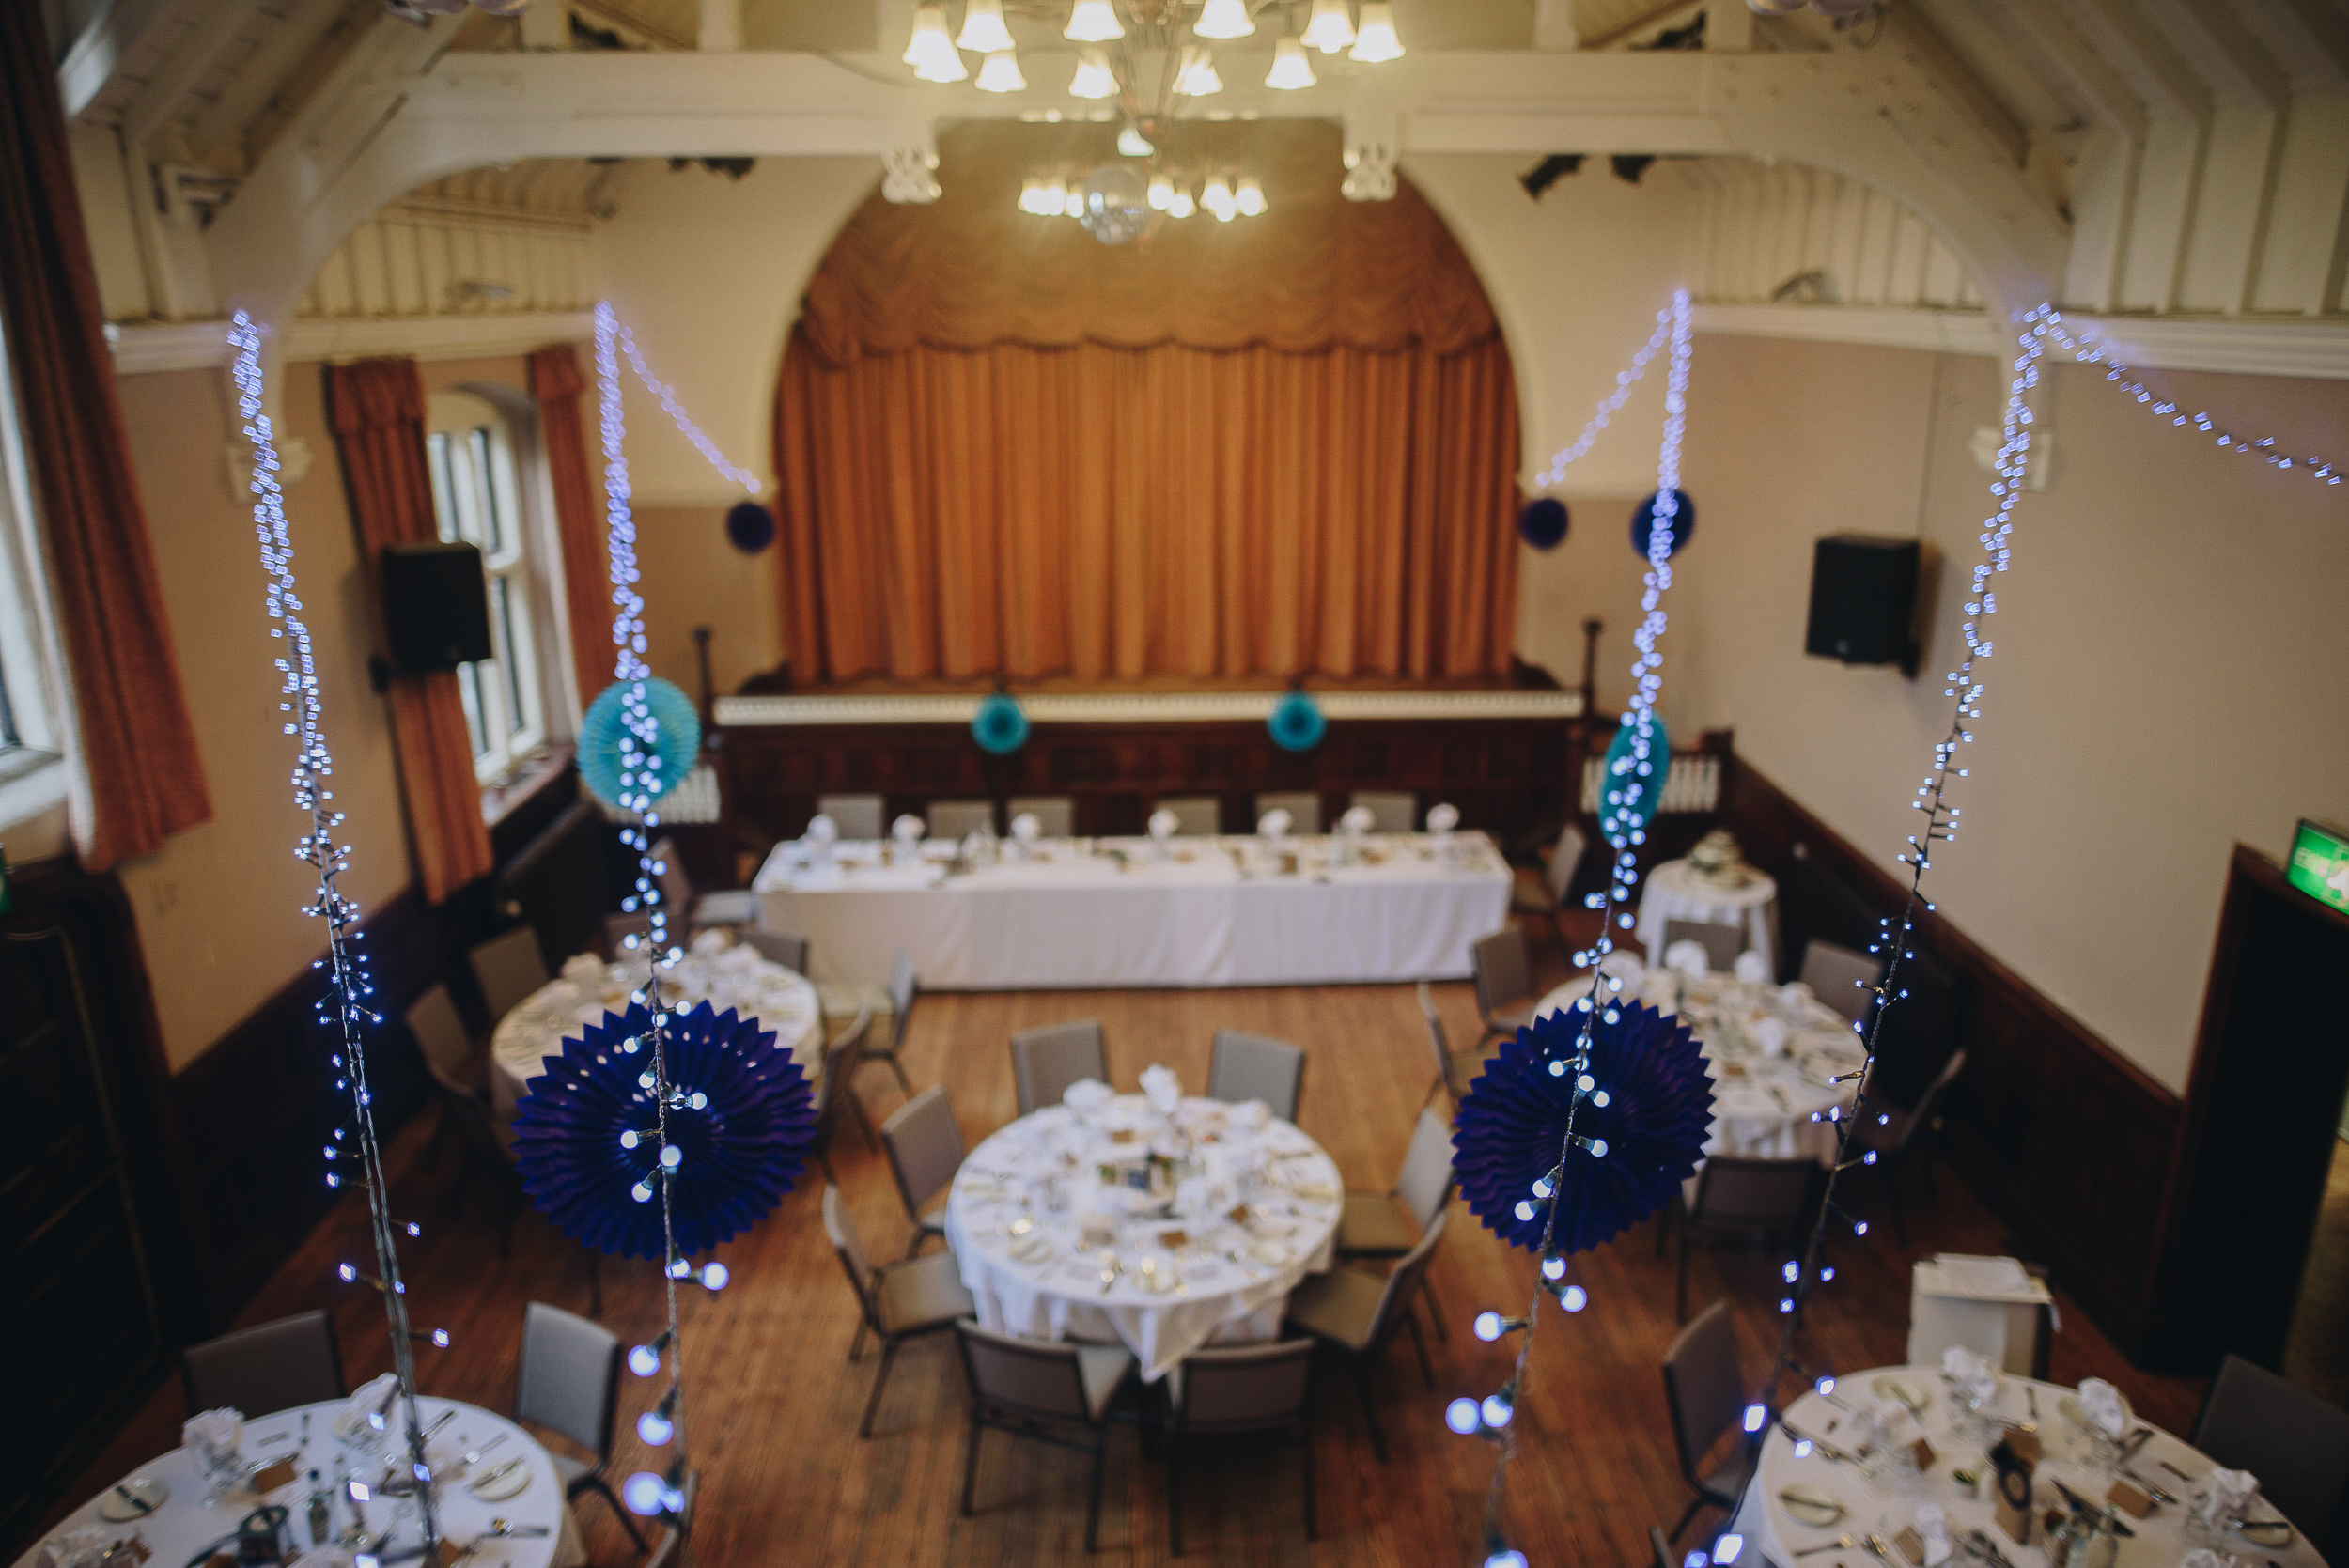 Smithills-hall-wedding-manchester-the-barlow-edgworth-hadfield-67.jpg